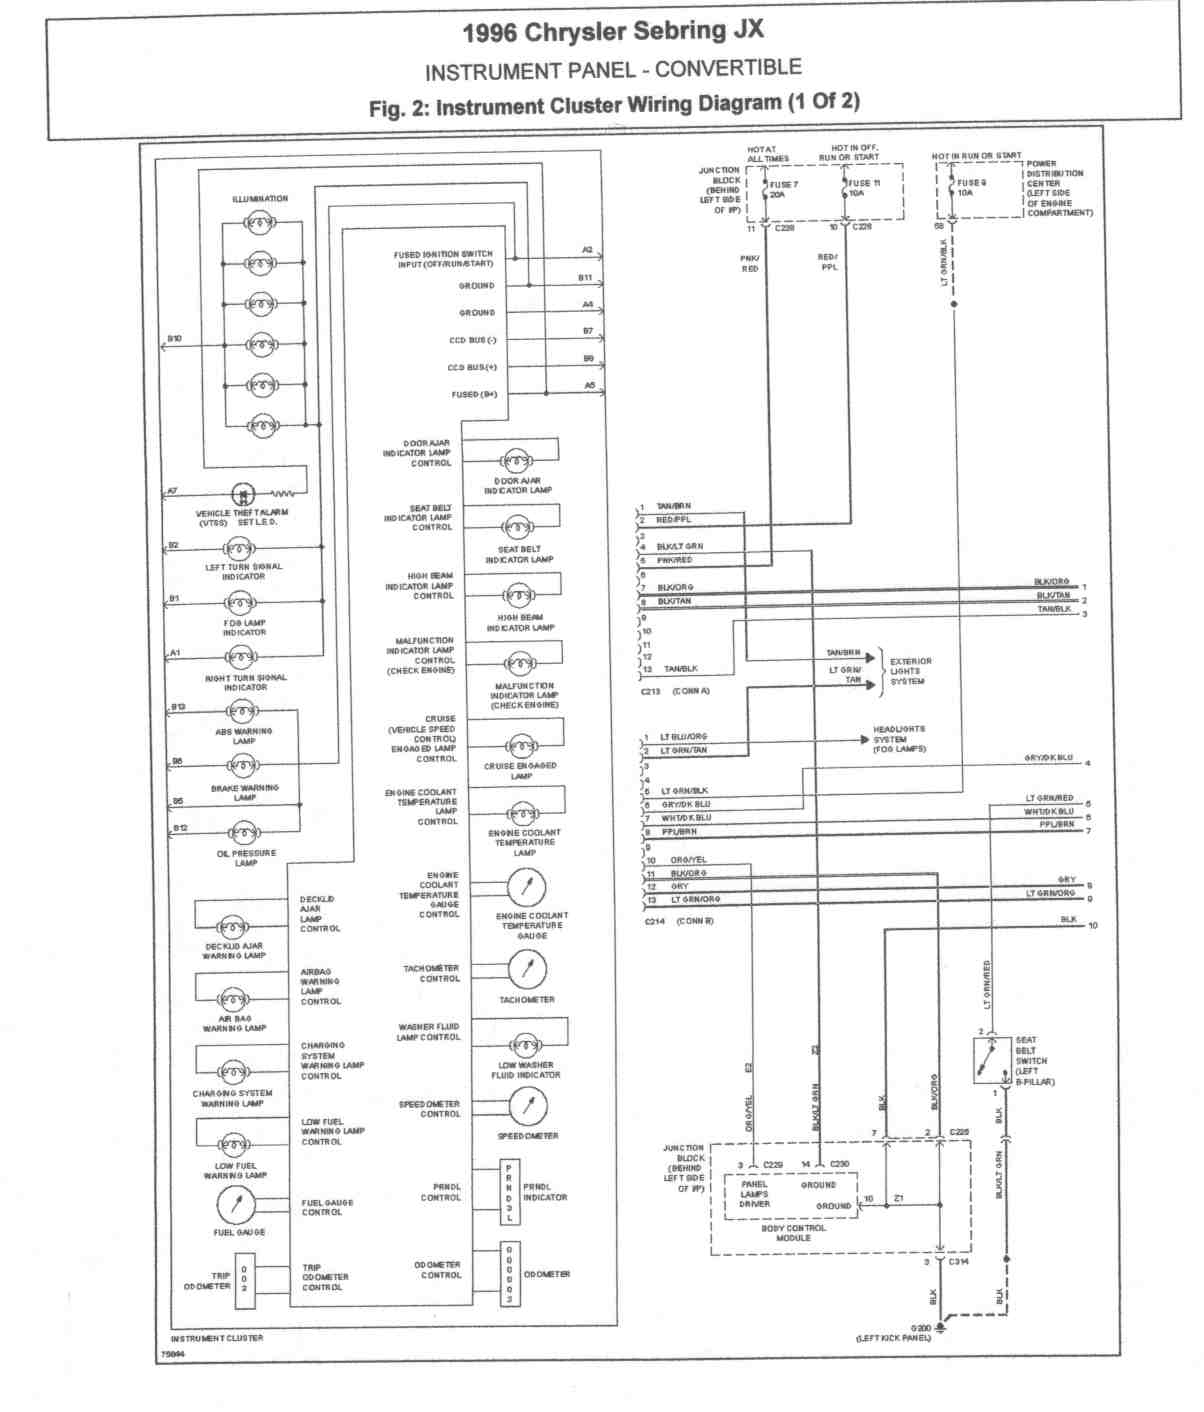 96 chrysler sebring fuse box diagram 96 chrysler sebring convertible electrical problem ... 1996 chrysler sebring fuse box diagram